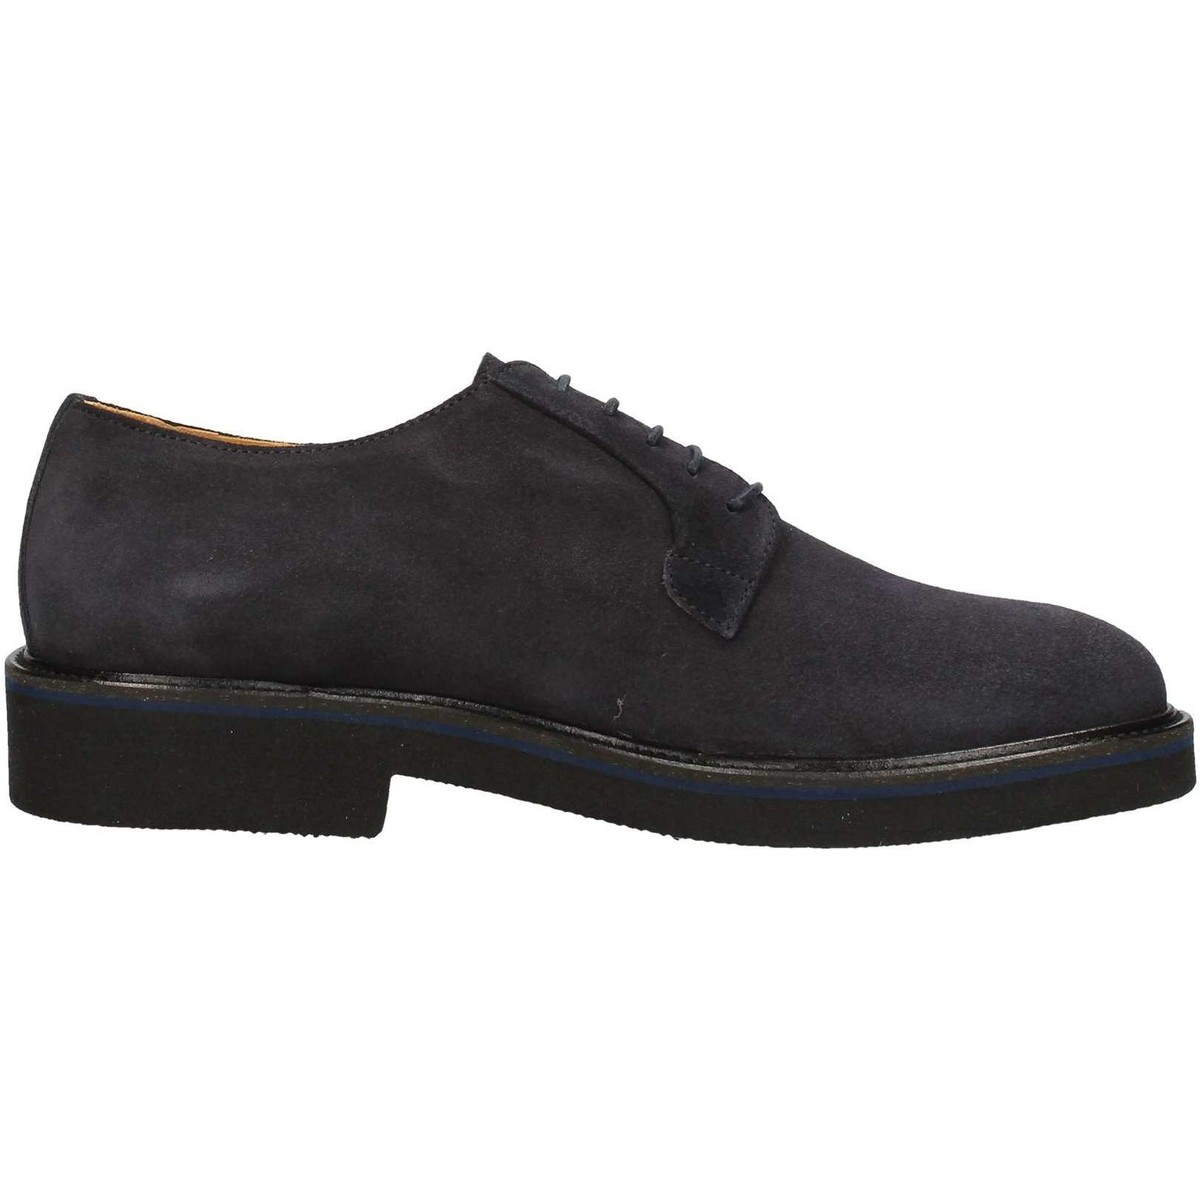 Hudson 931 Lace up shoes Mann Blau Blau - Schuhe Derby-Schuhe Herren 92,20 €